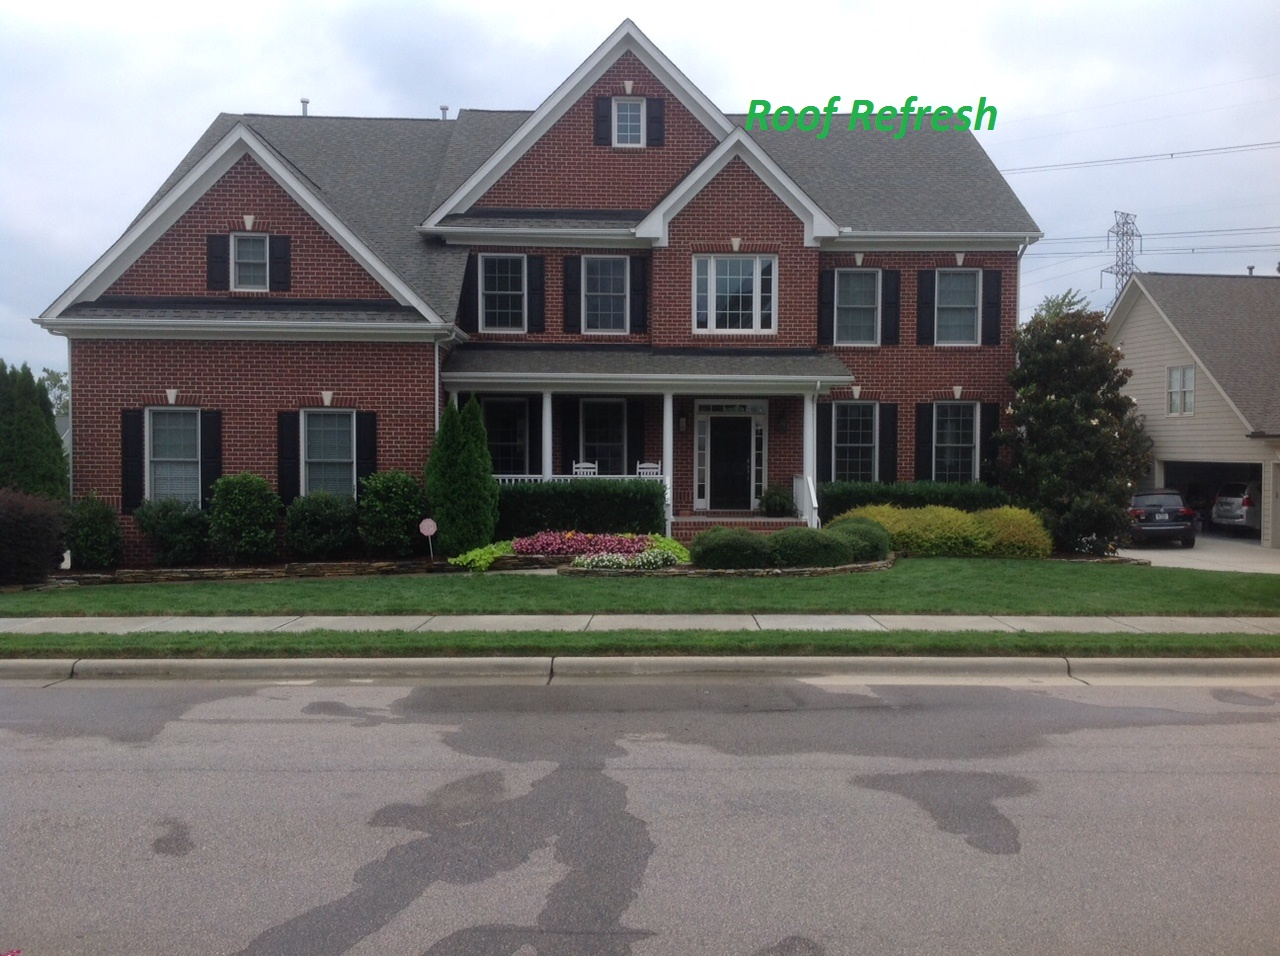 Roof shingles no more mold Roof Refresh – Mold On Roof Shingles